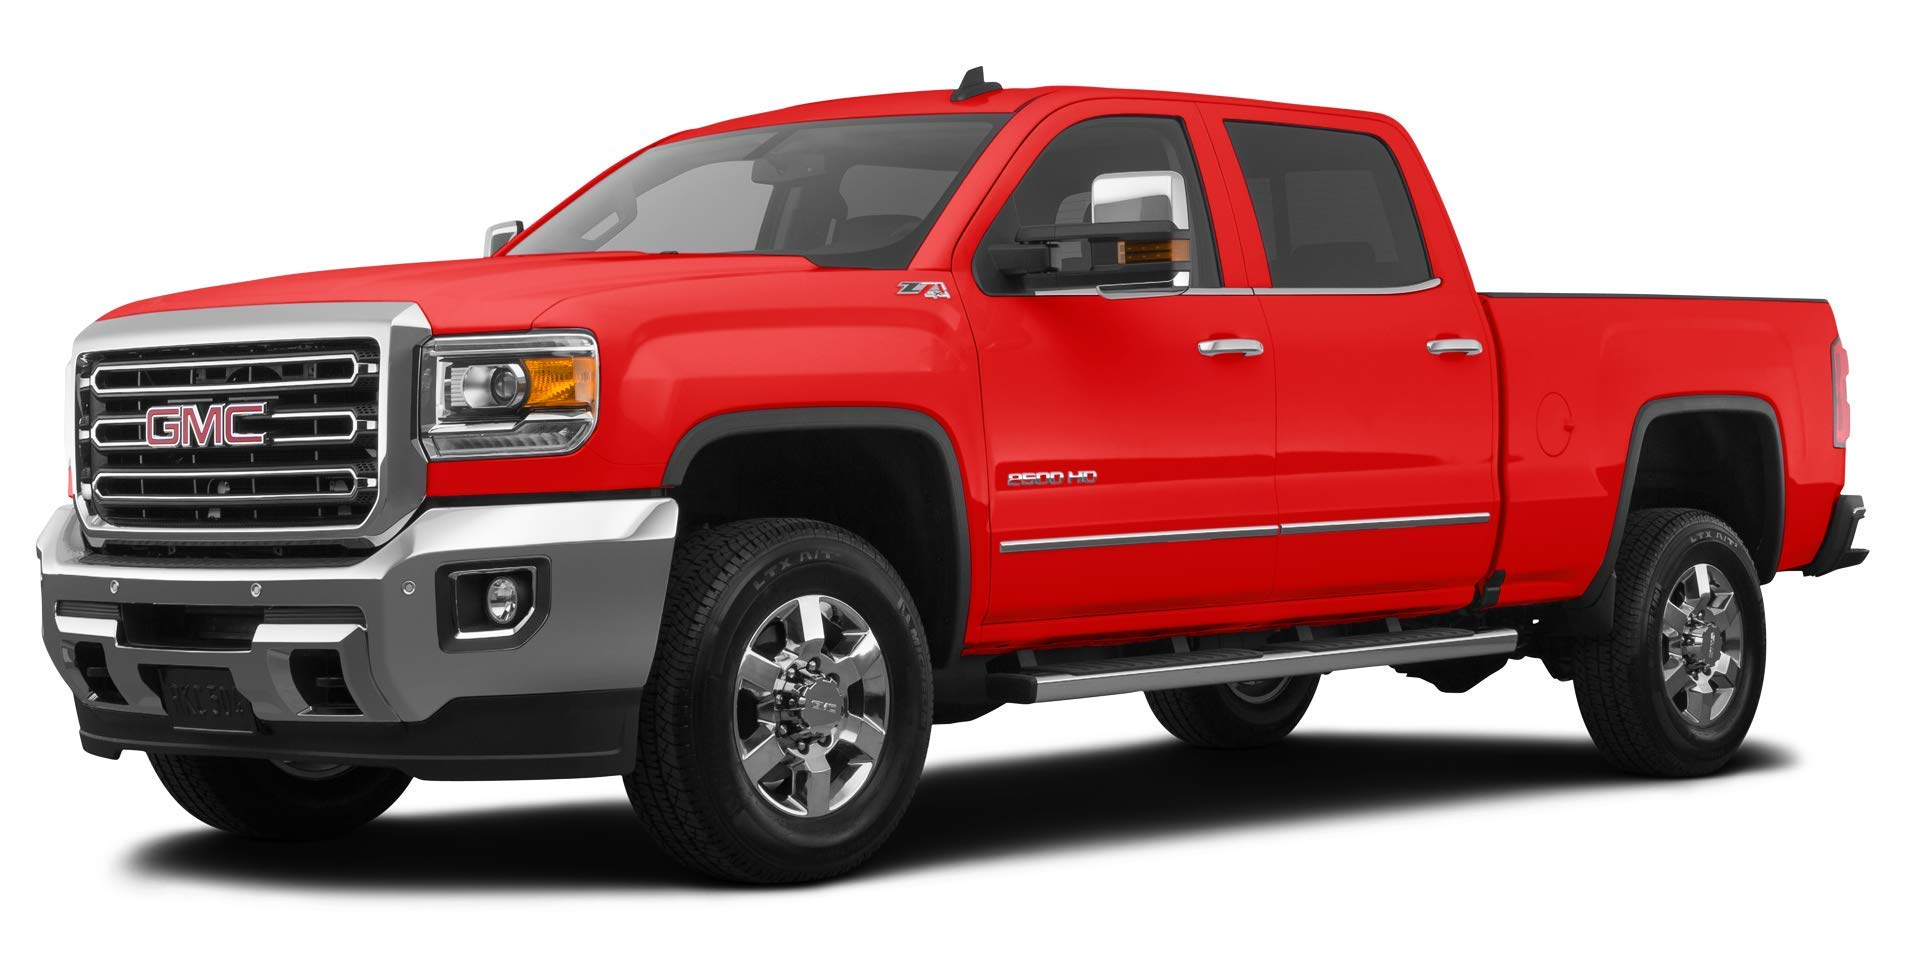 Amazon.com: 2019 GMC Sierra 2500 HD Reviews, Images, and ...